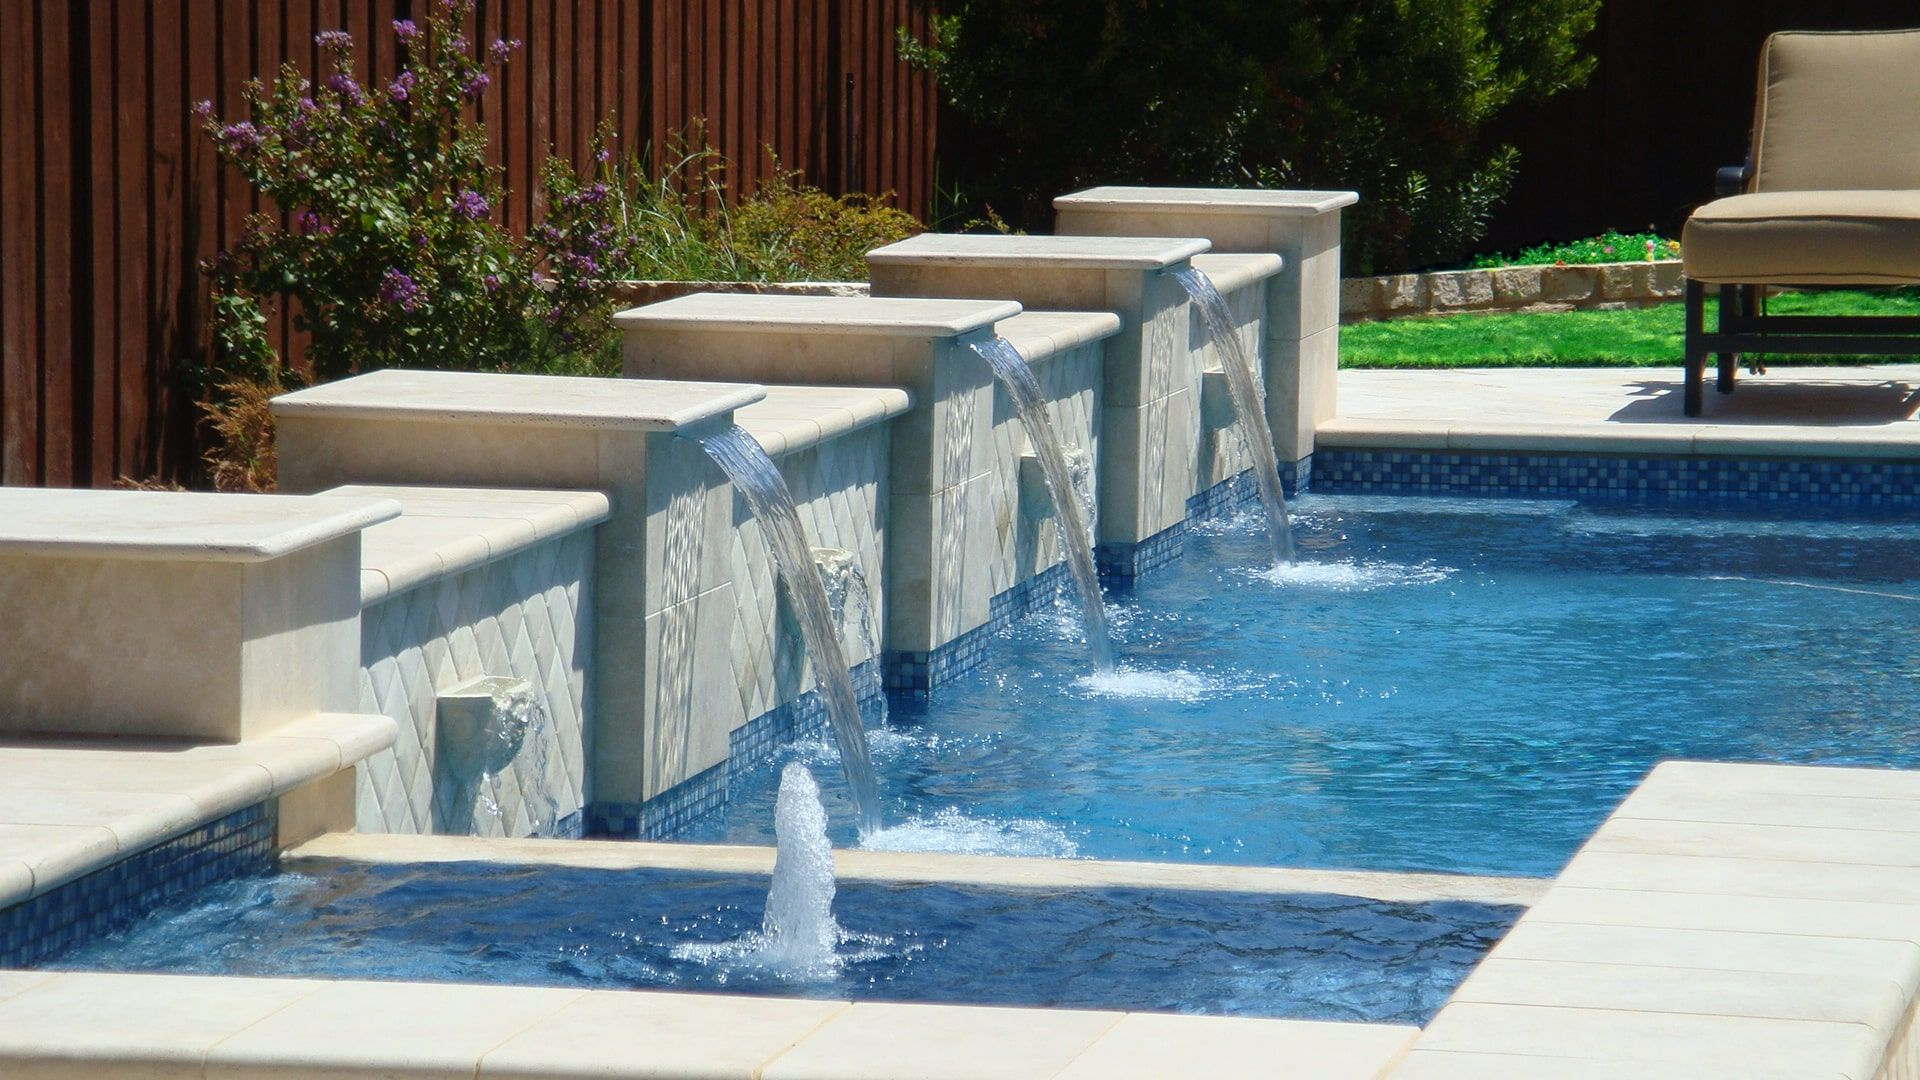 Swimming Pool Contractors In Dubai Pool And Water Features Companies In 2020 Swimming Pool Landscaping Pool Contractors Landscaping Company